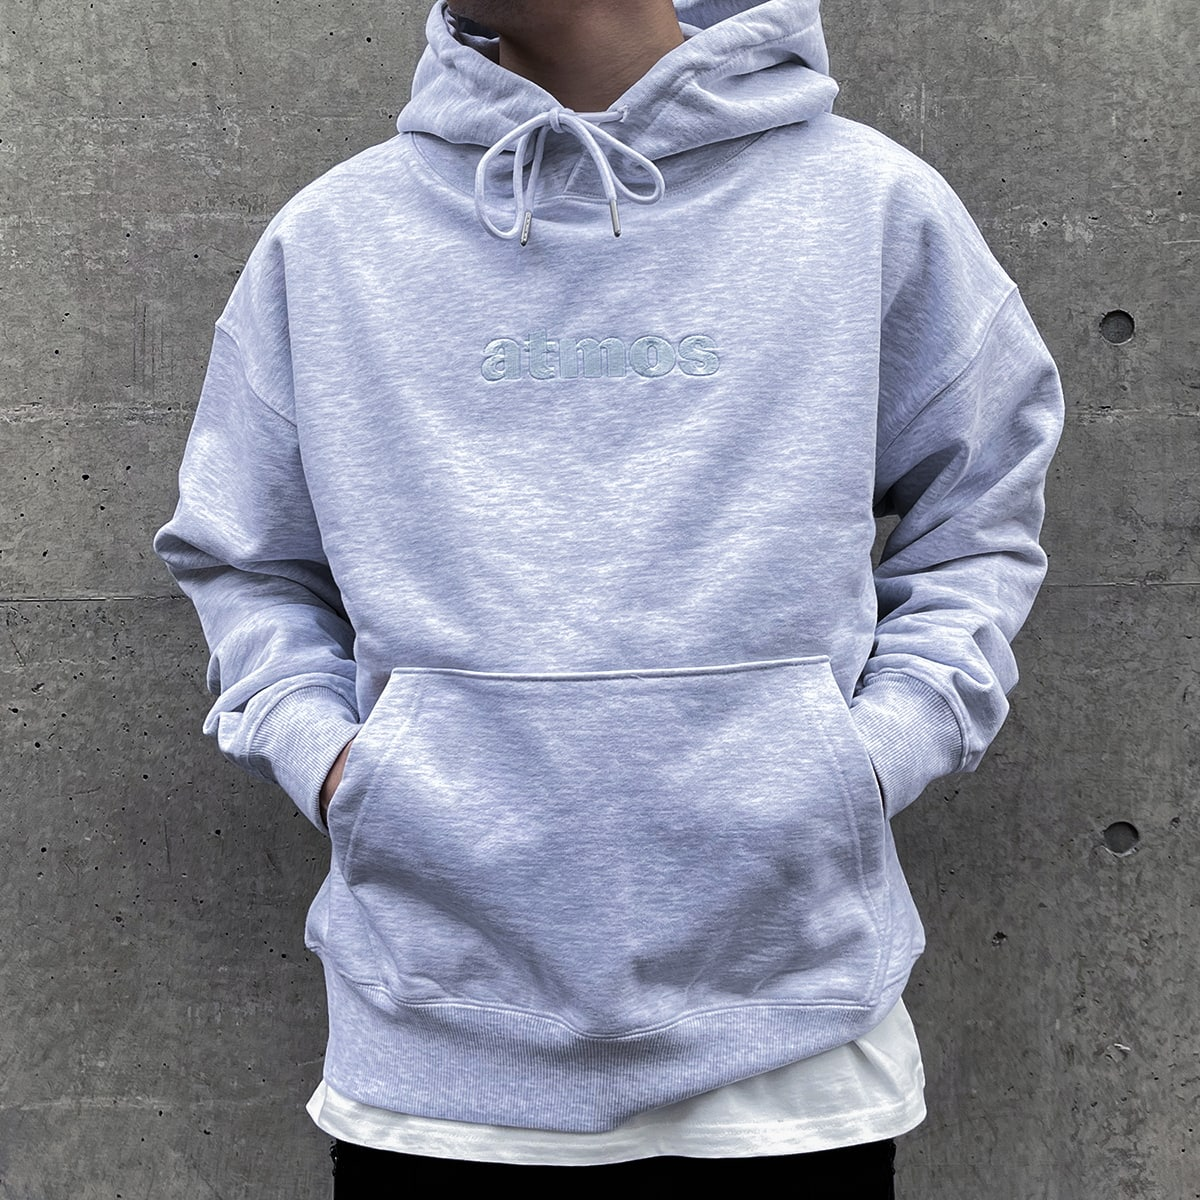 atmos EMBROIDERY LOGO HOODIE GRAY 21SP-I_photo_large